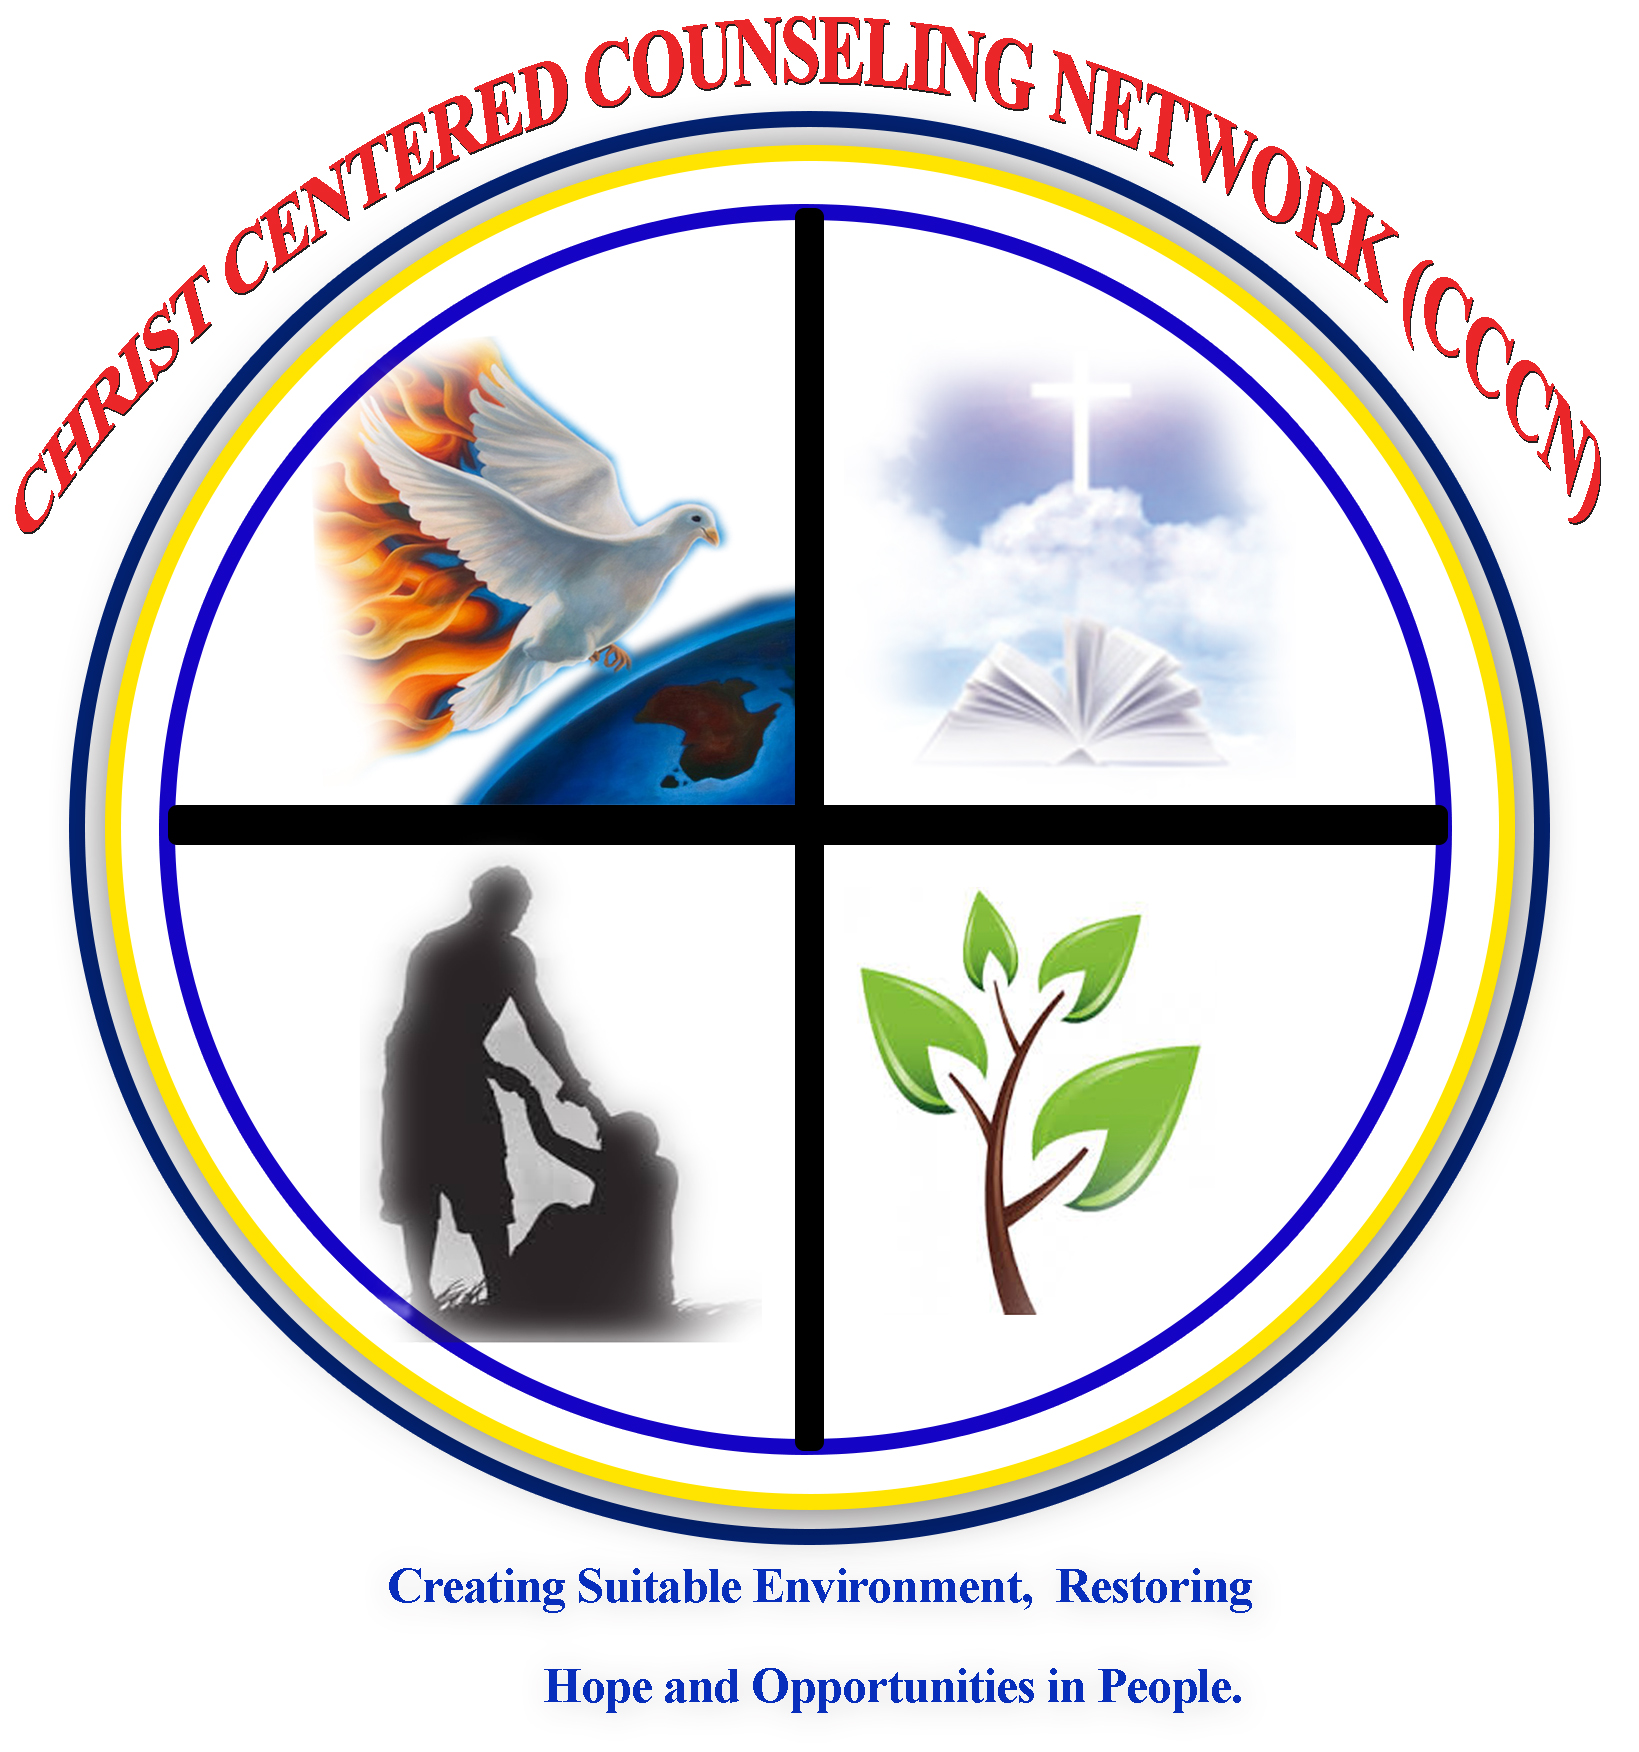 Christ Centered Counseling Network (CCCN)